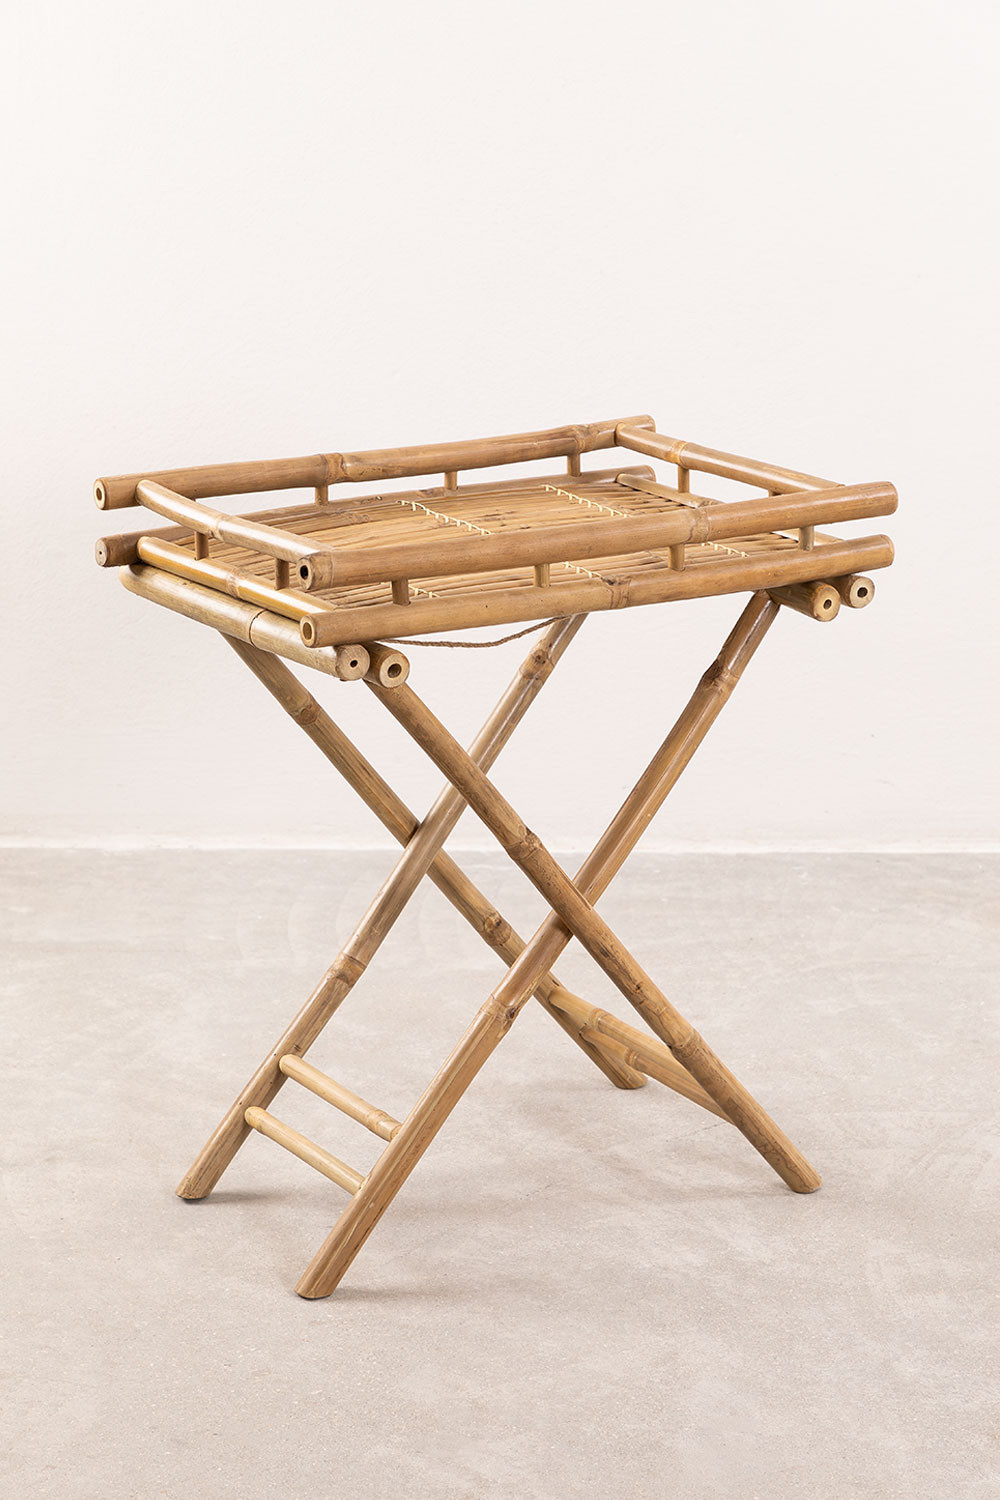 Bamboo Foldable Side Table with Tray Wallis, gallery image 1